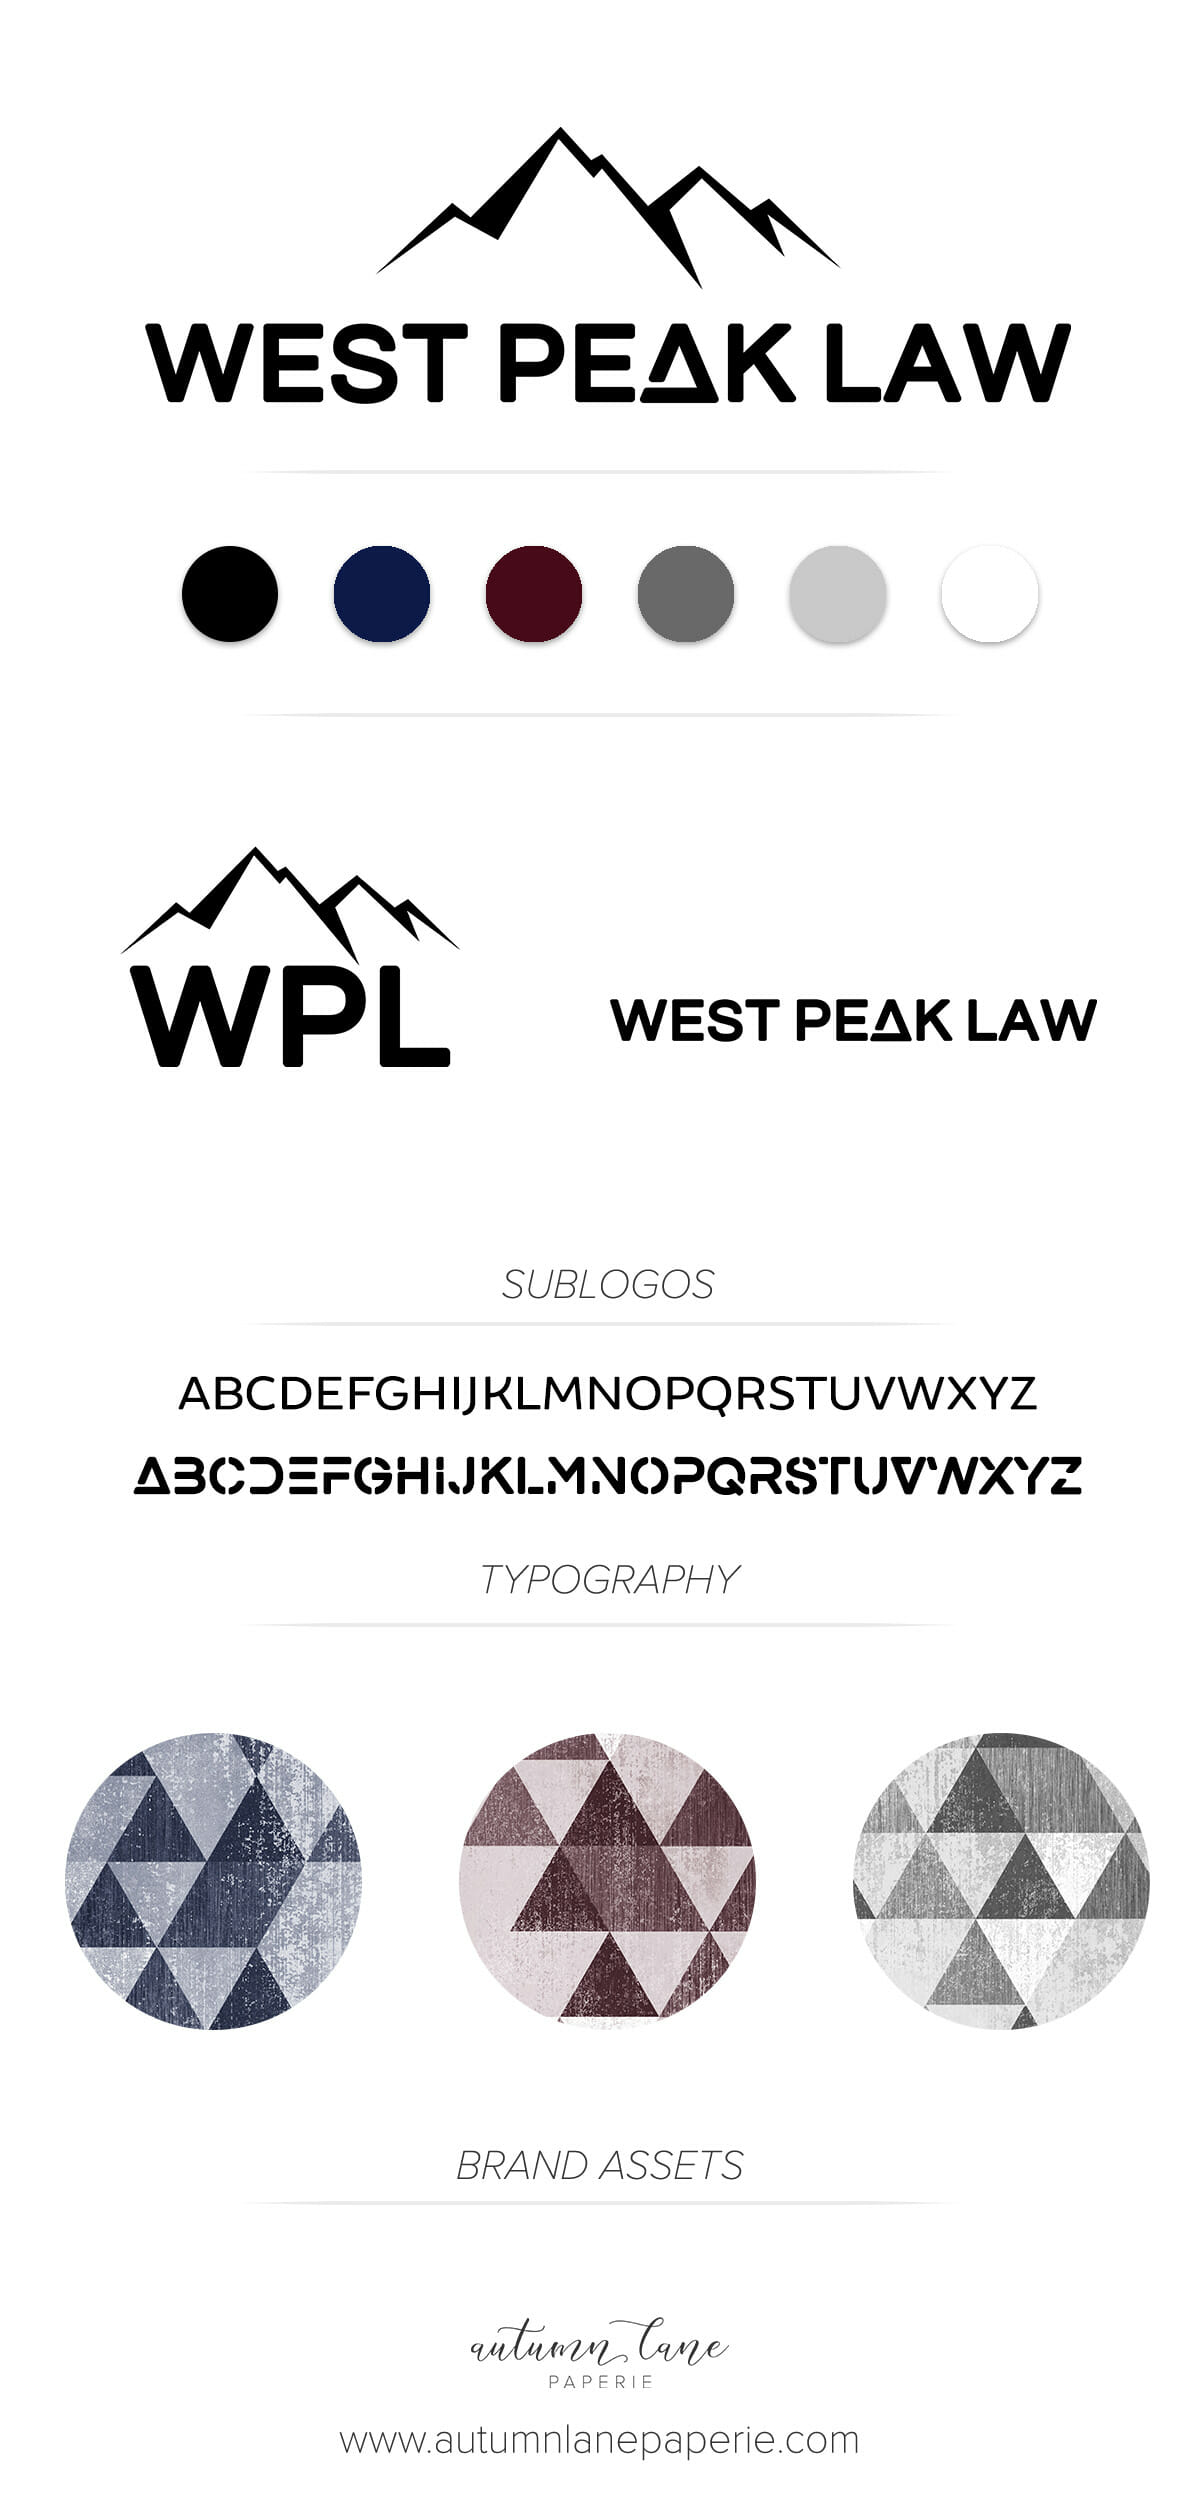 West Peak Law